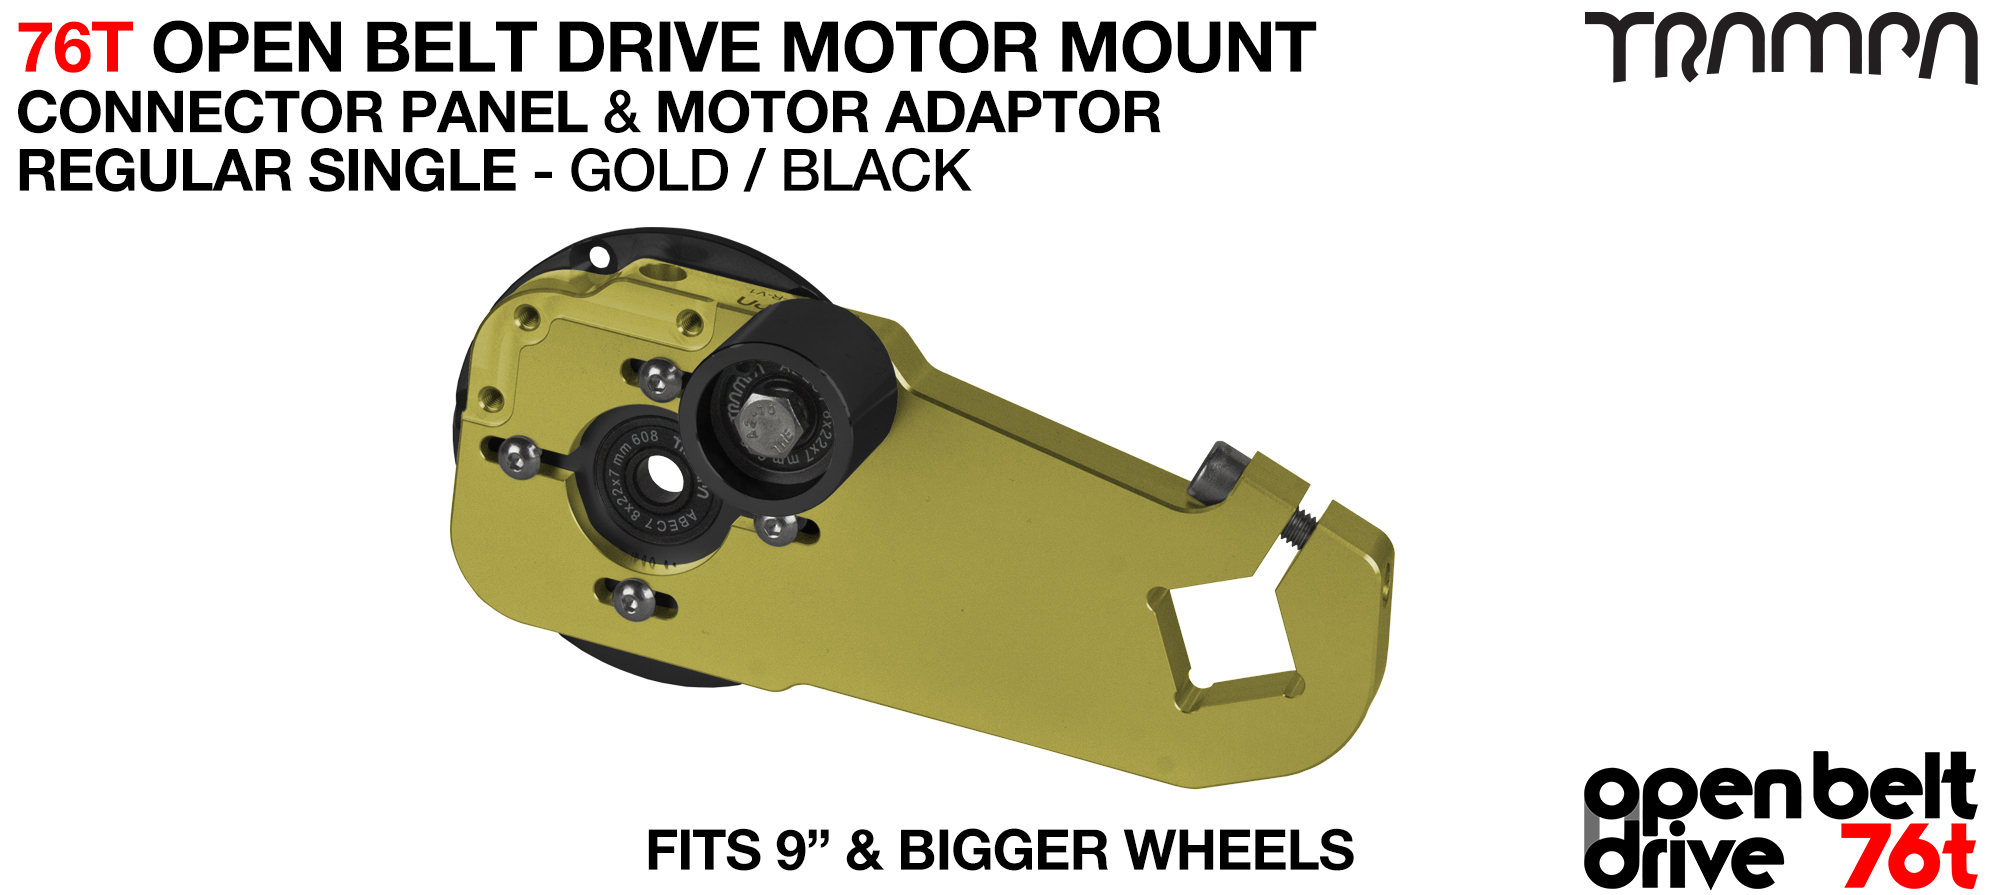 76T Open Belt Drive Motor Mount & Motor Adaptor - SINGLE GOLD